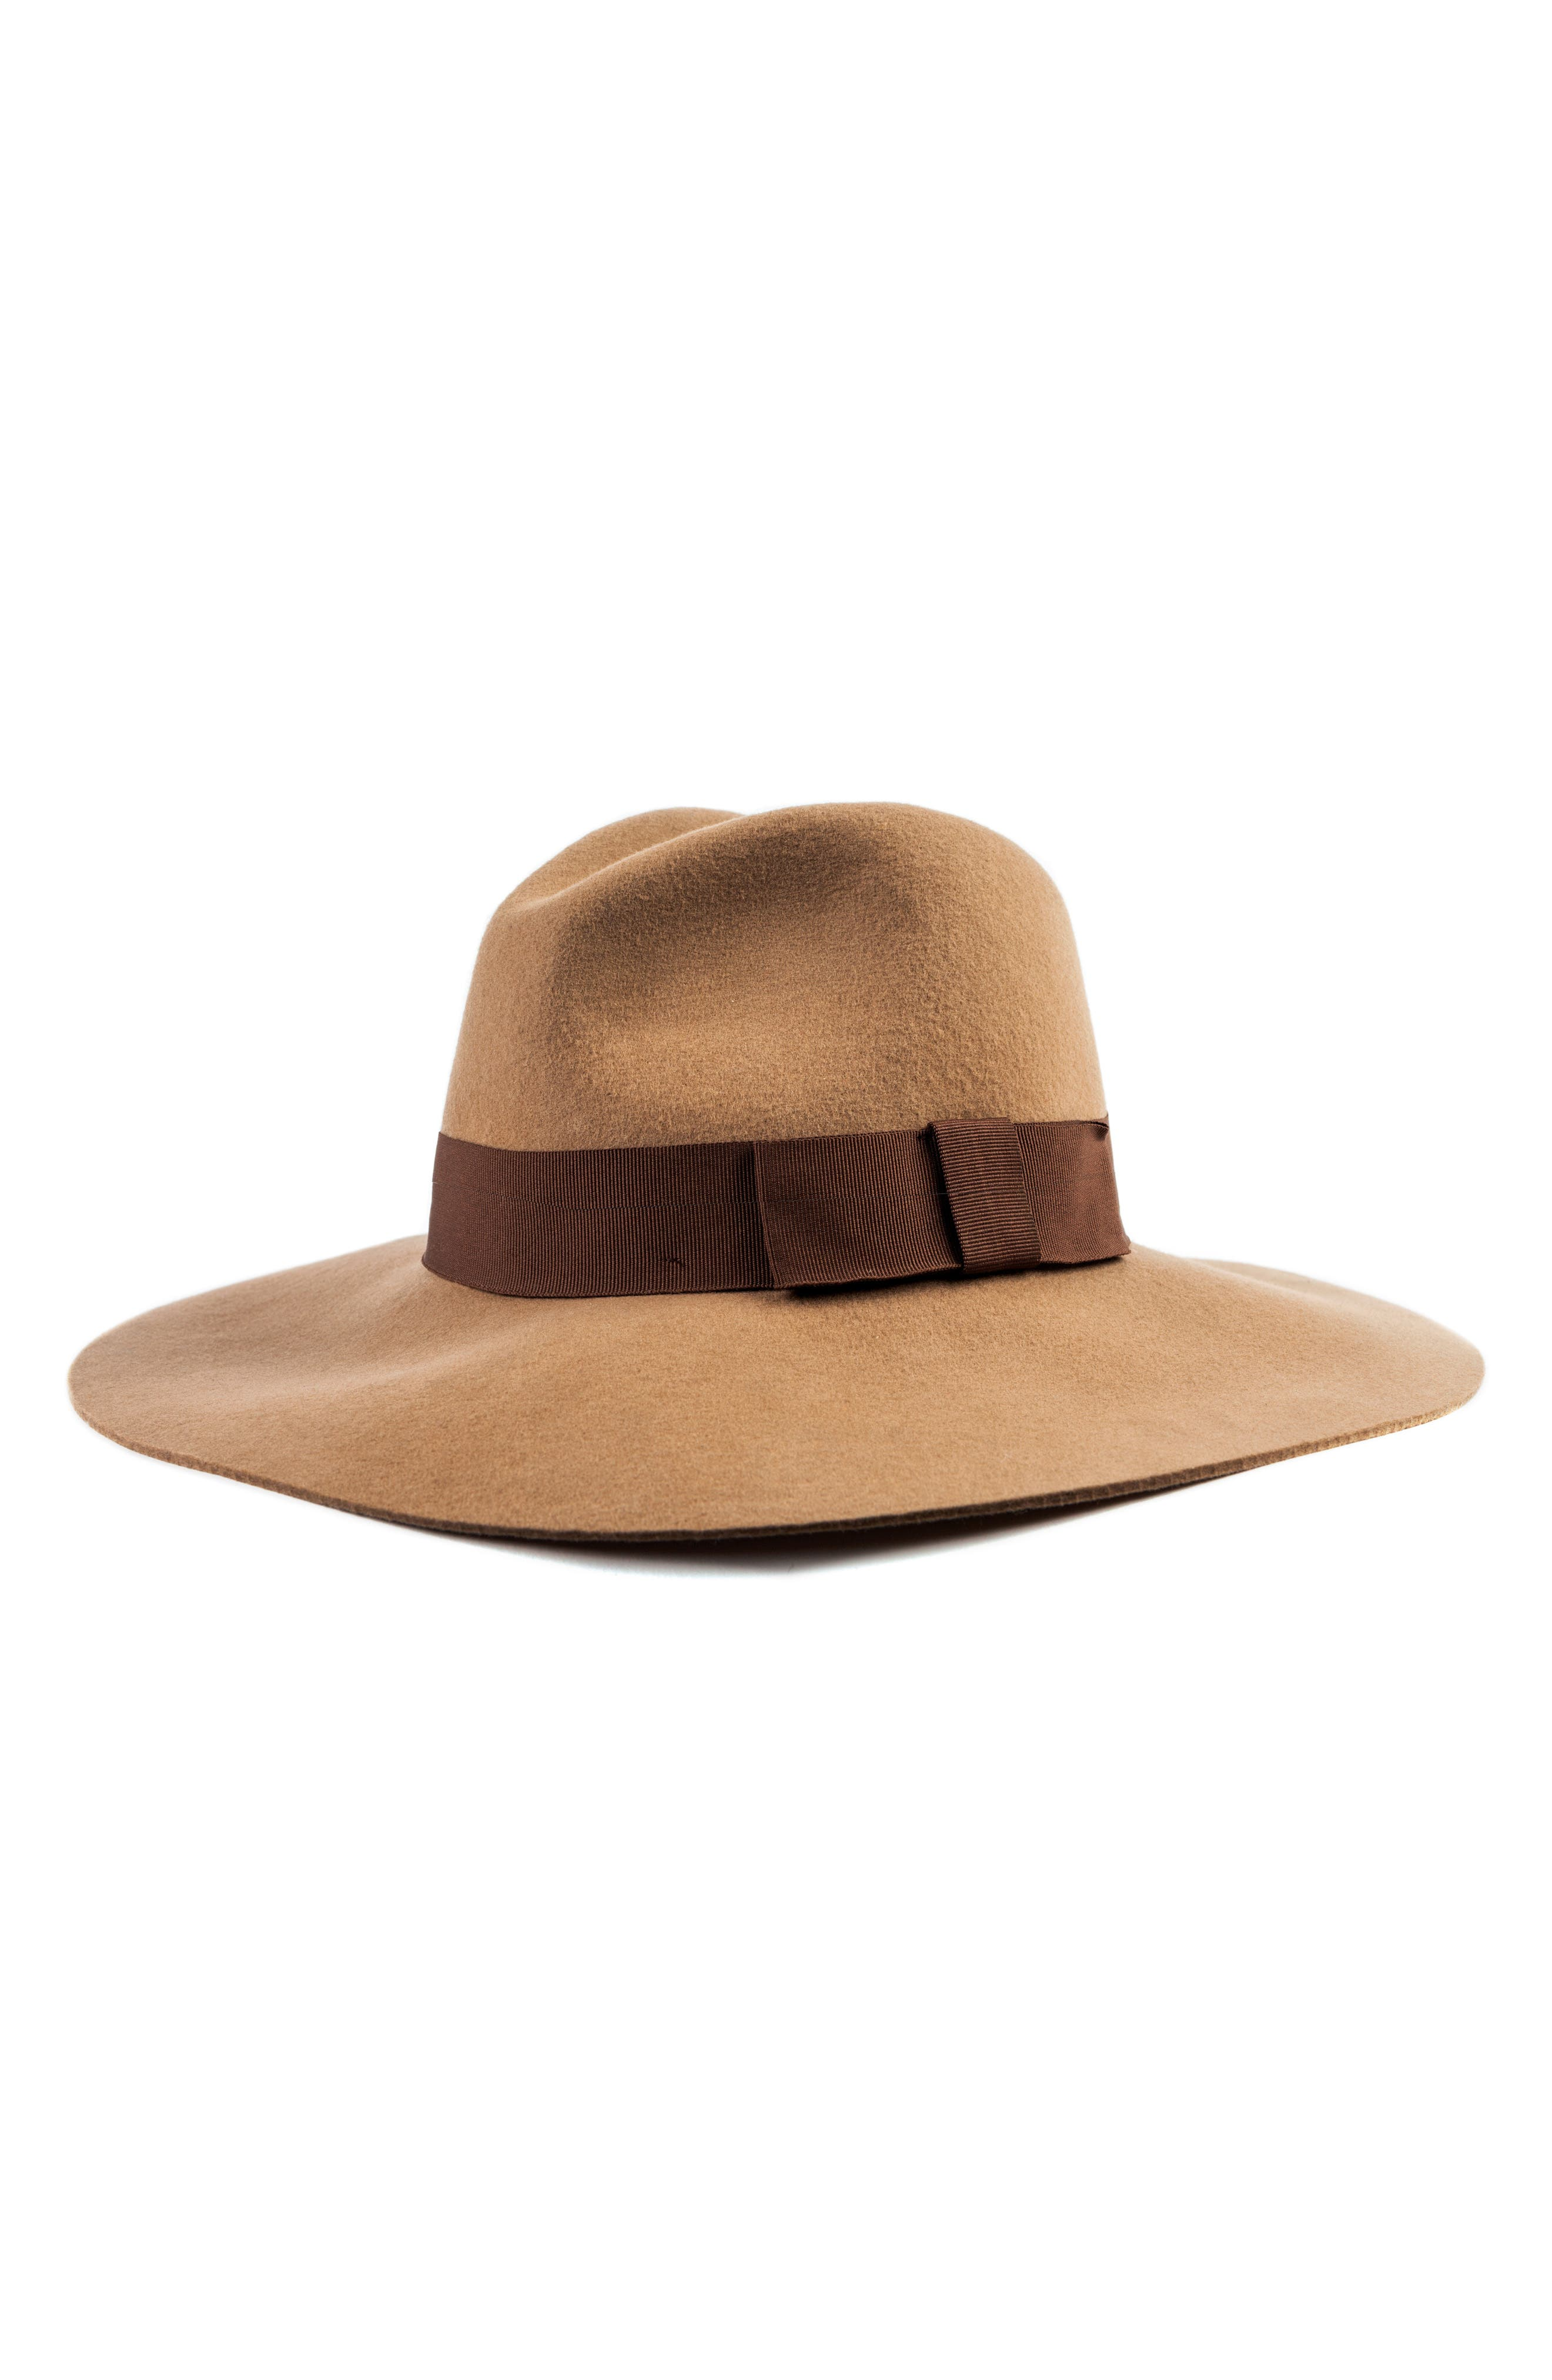 BRIXTON,                             'Piper' Floppy Wool Hat,                             Main thumbnail 1, color,                             TAN/ DARK BROWN